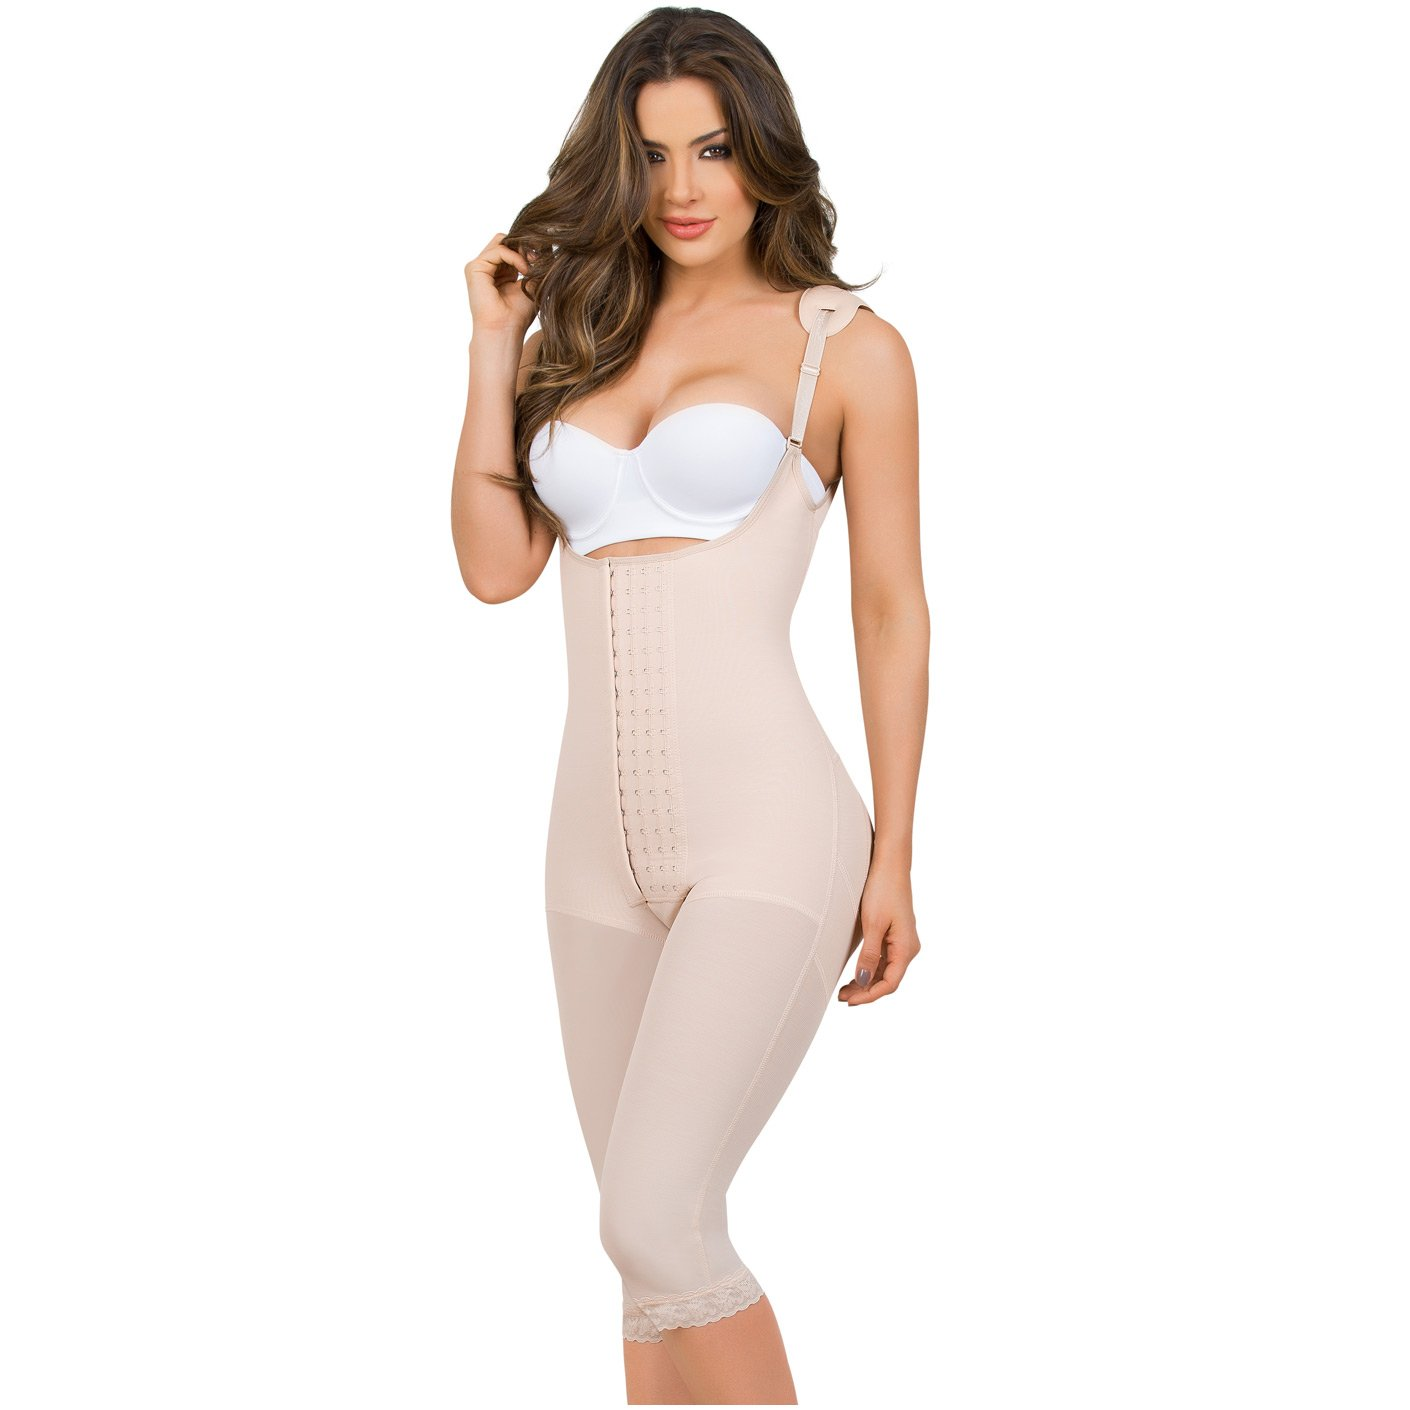 471d50cd6b052 MariaE 9152 Postoperative Women s Shapewear with Shoulder Pads - Pal Negocio